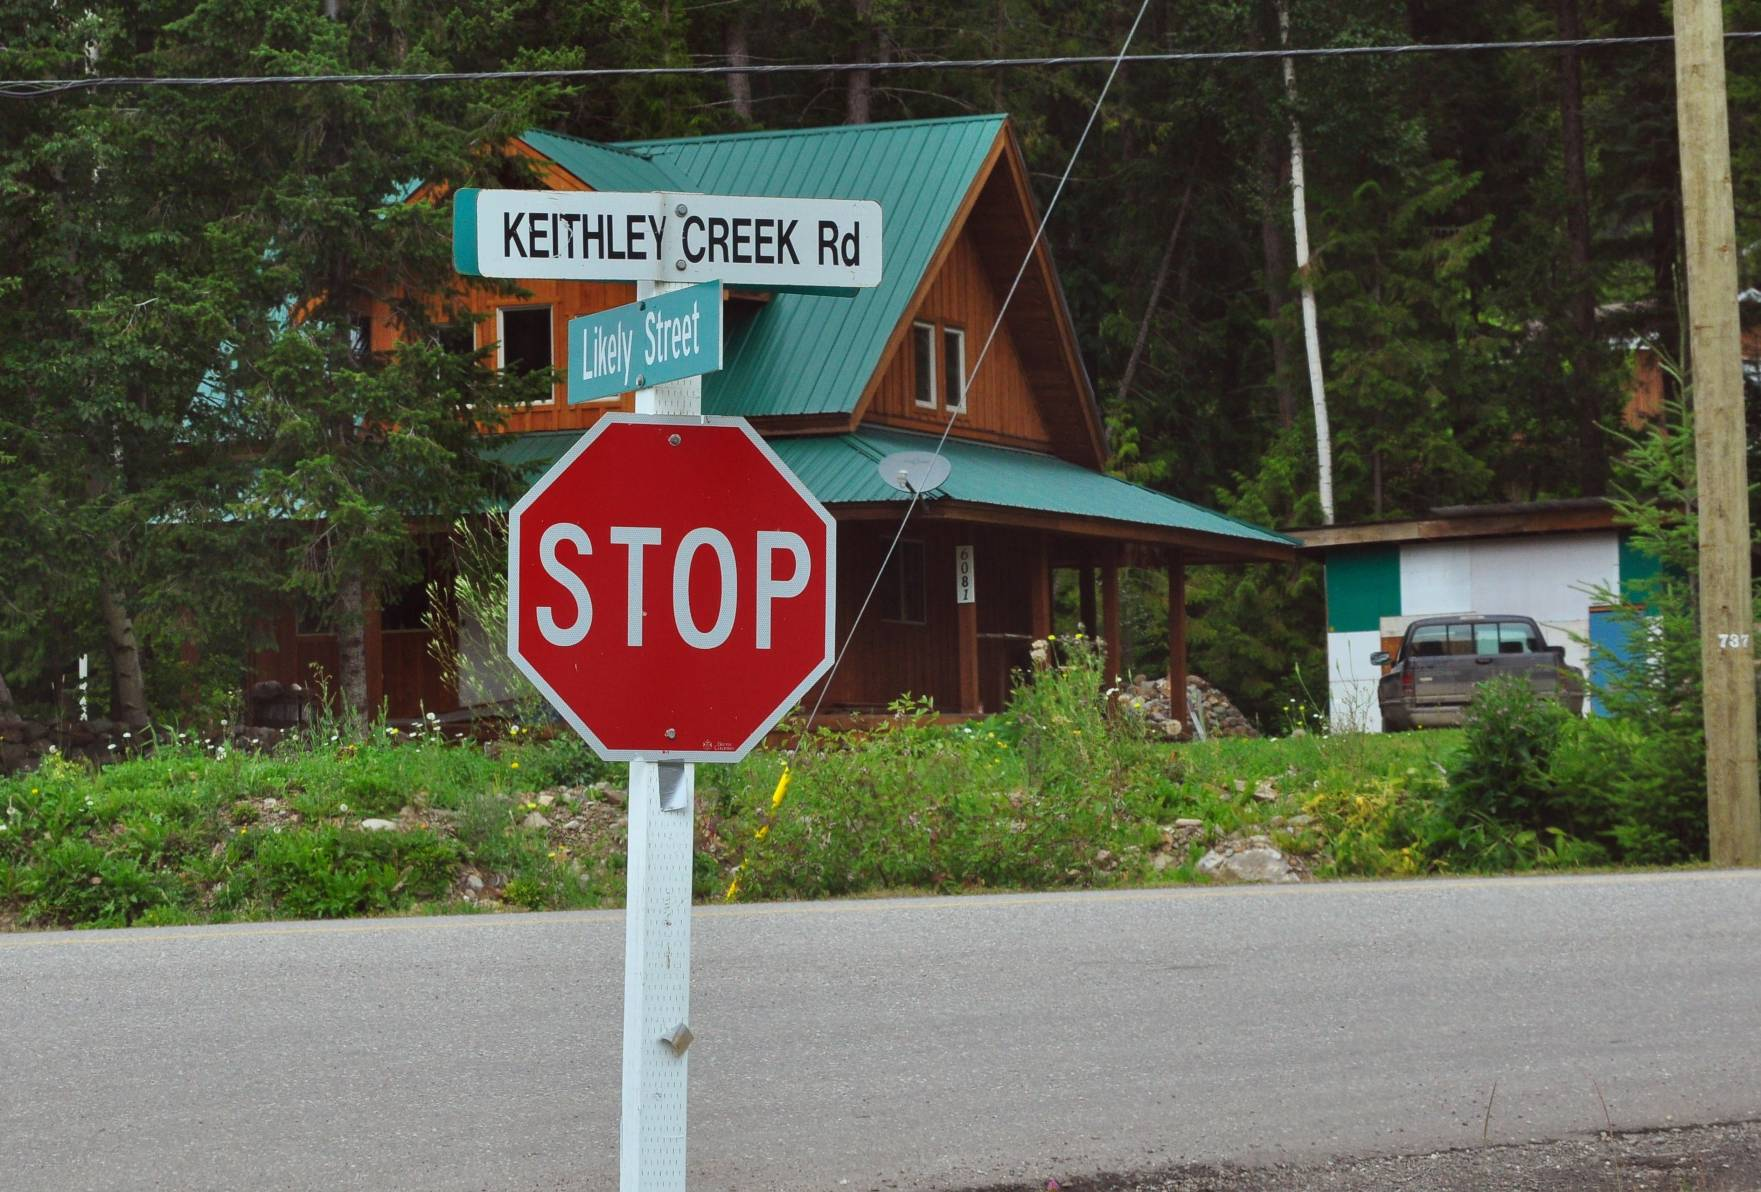 1. Abschnitt Keithley Creek Road